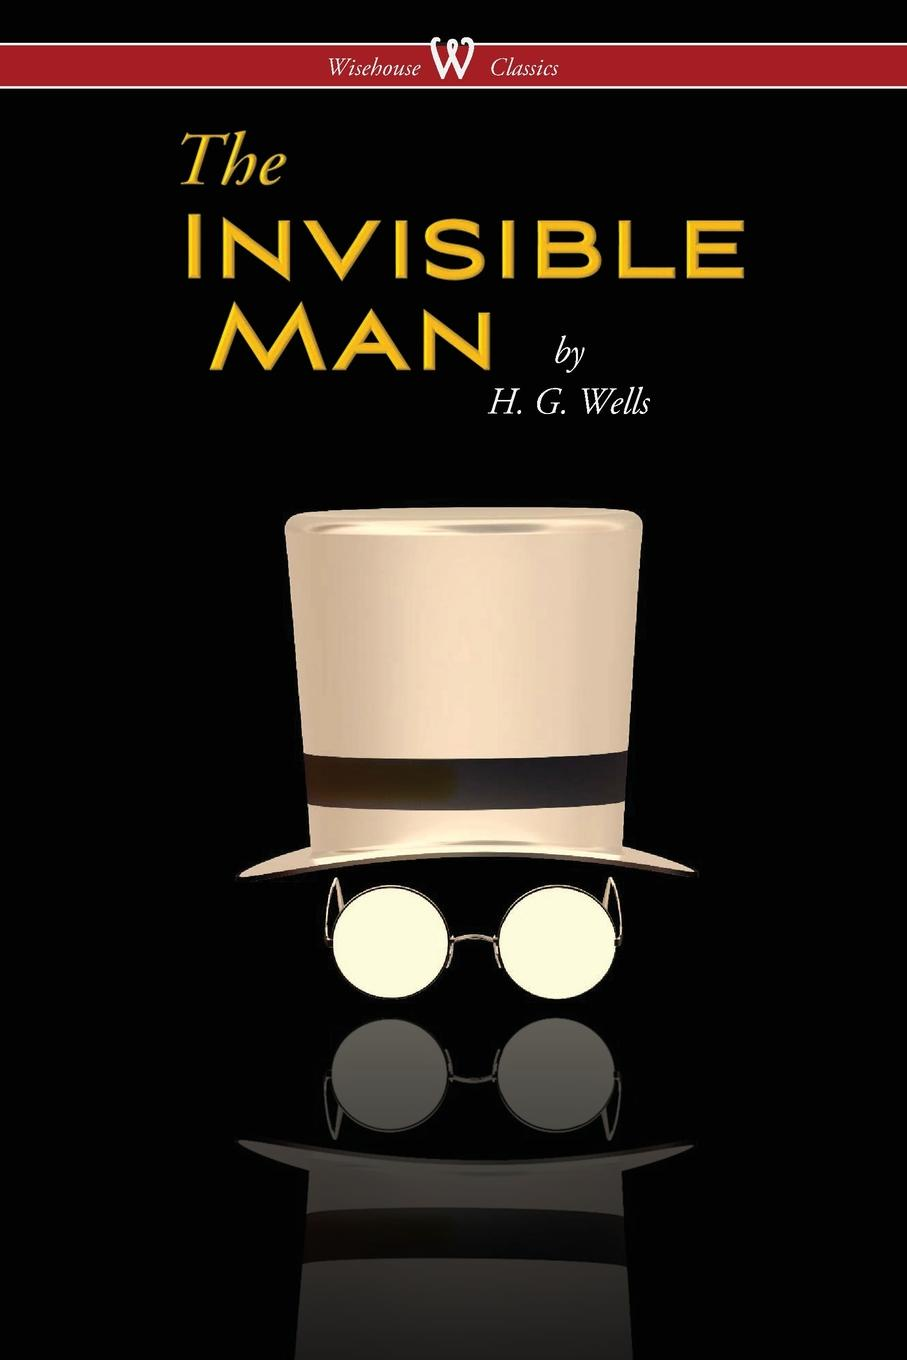 H. G. Wells The Invisible Man - A Grotesque Romance (Wisehouse Classics Edition) h g wells the invisible man